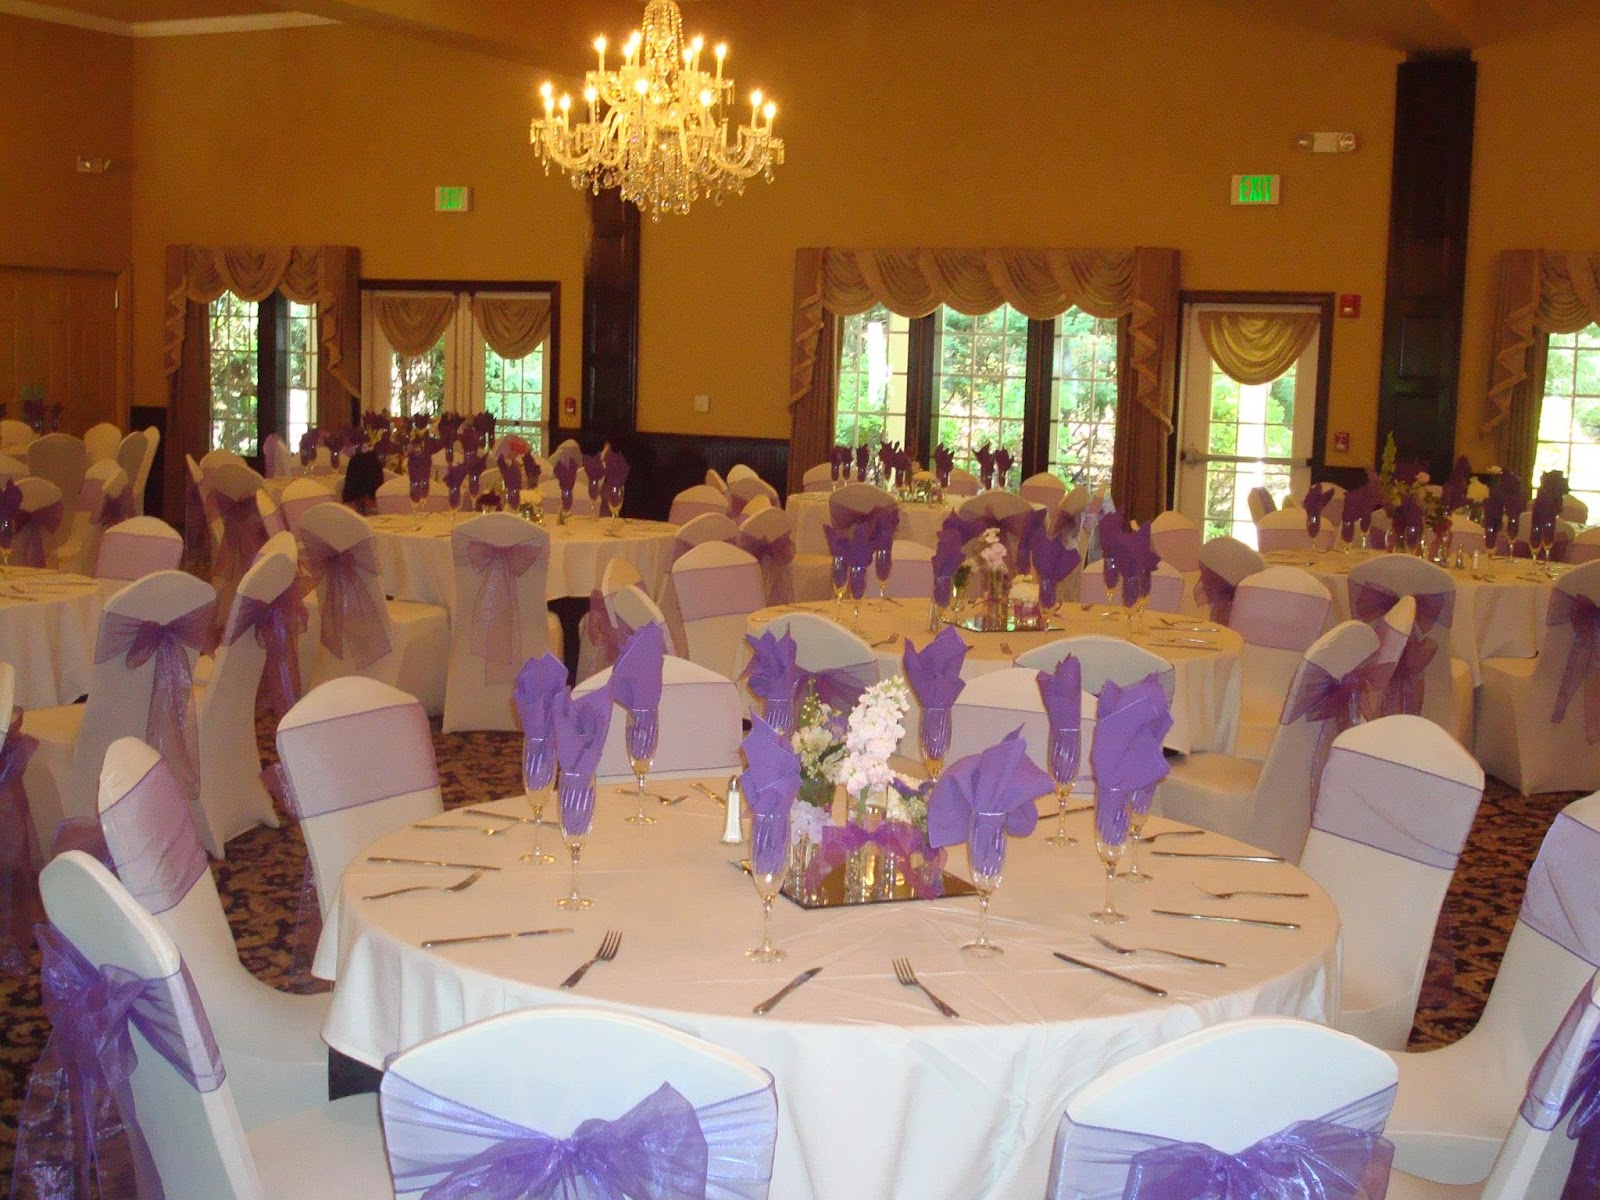 Elegant Chair Covers & Event Decor Sheepskin For Recliners Committed Blog 2012 Exhibitor